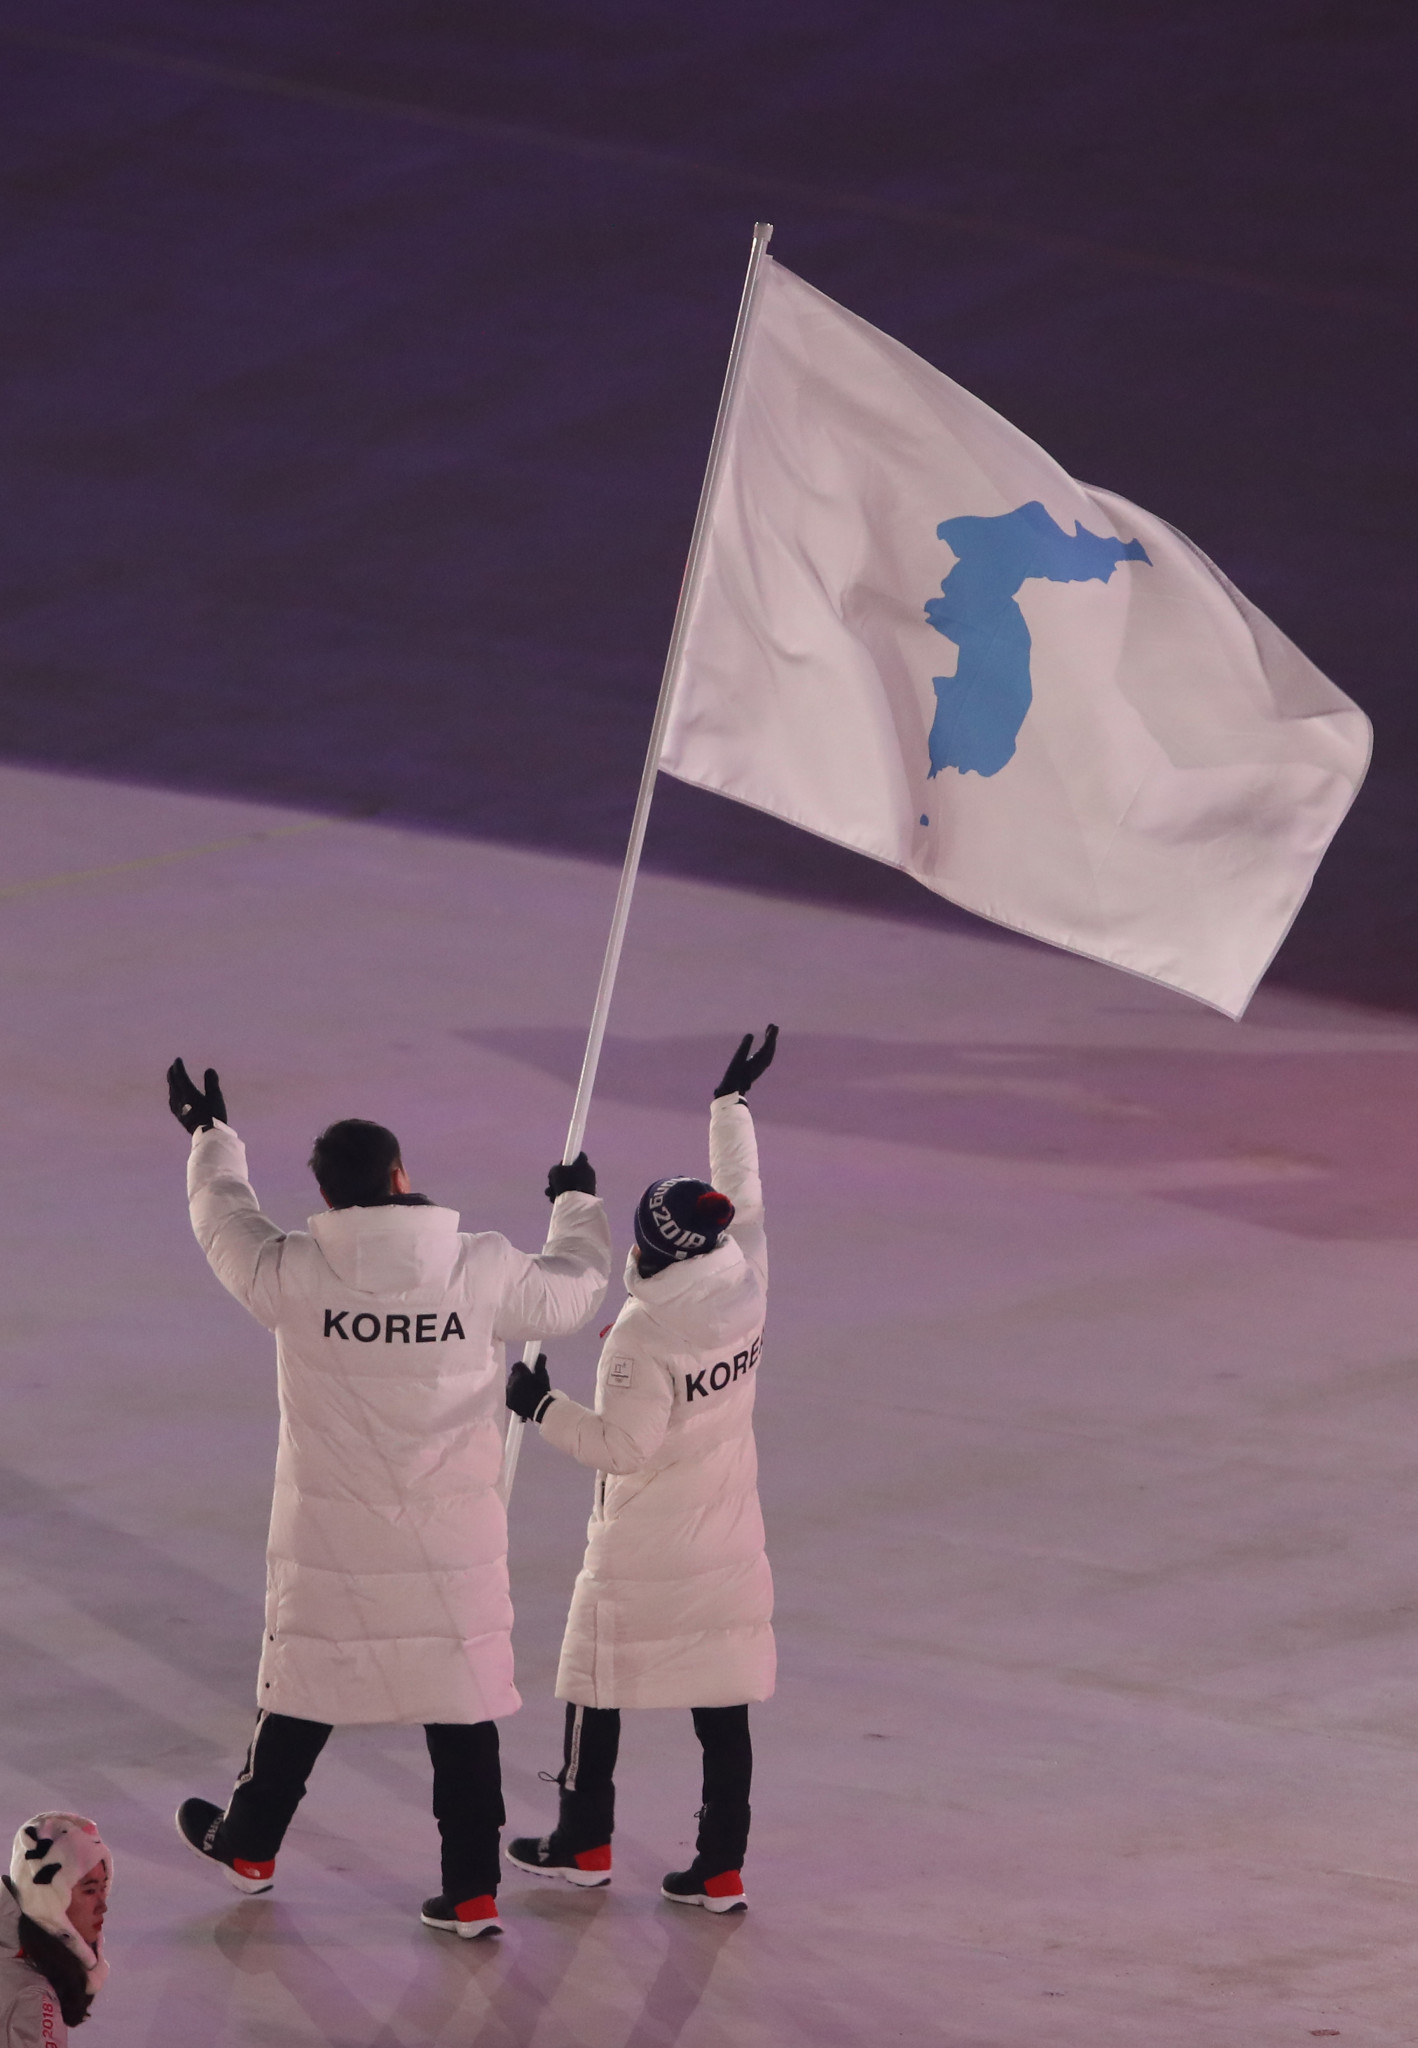 The unified Korea flag is flown at the Pyeongchang 2018 Winter Olympics in the South in February ©Getty Images